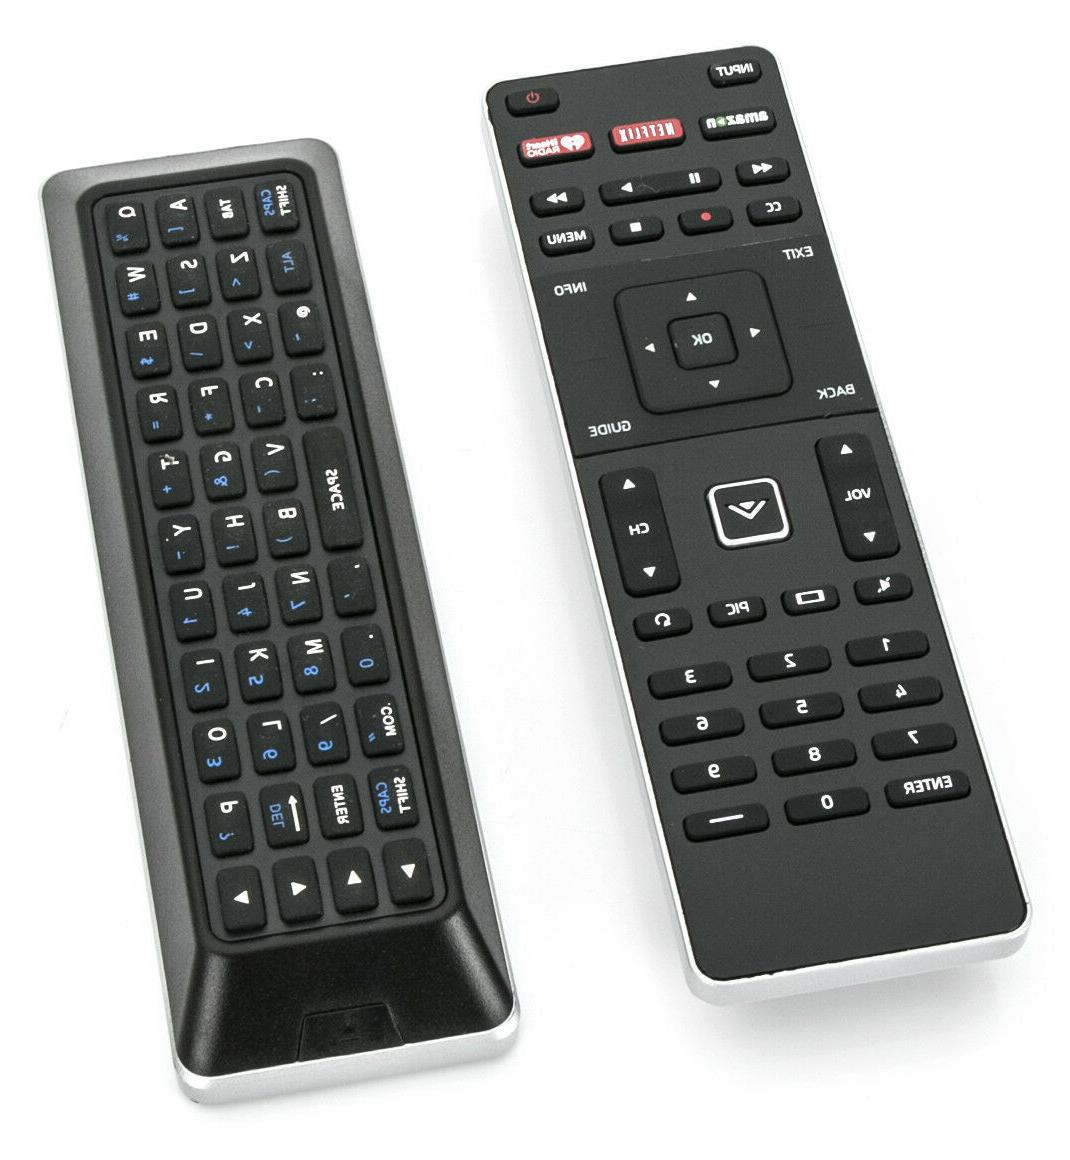 New XRT500 for Smart with Qwerty Back Light